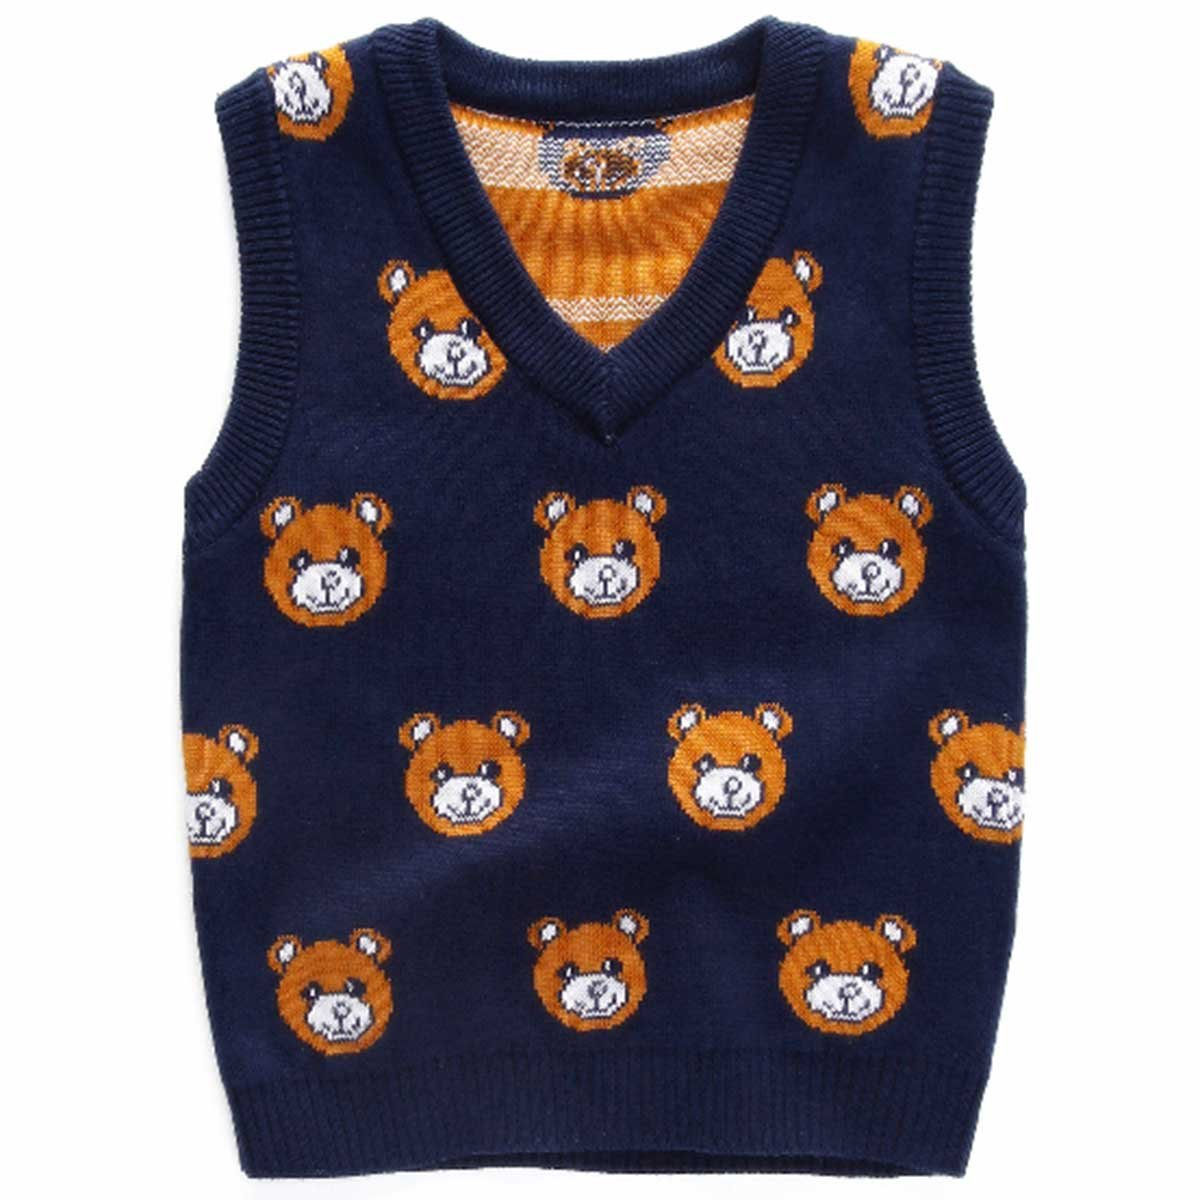 Juze Little Boys Girls Sweater,School Uniforms Multi Cable Knitted Argyle Sweater Vest Navy 120